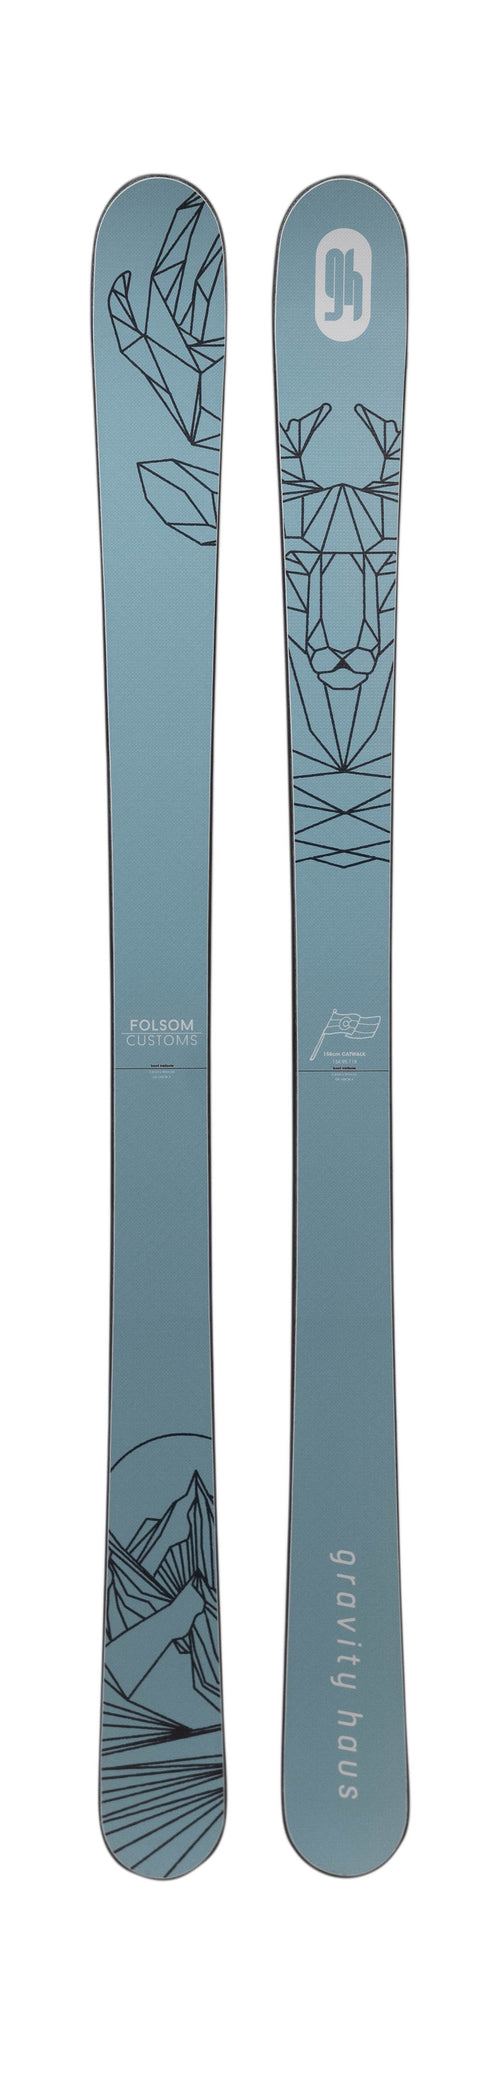 163cm Catwalk Skis w/ GH Custom Design